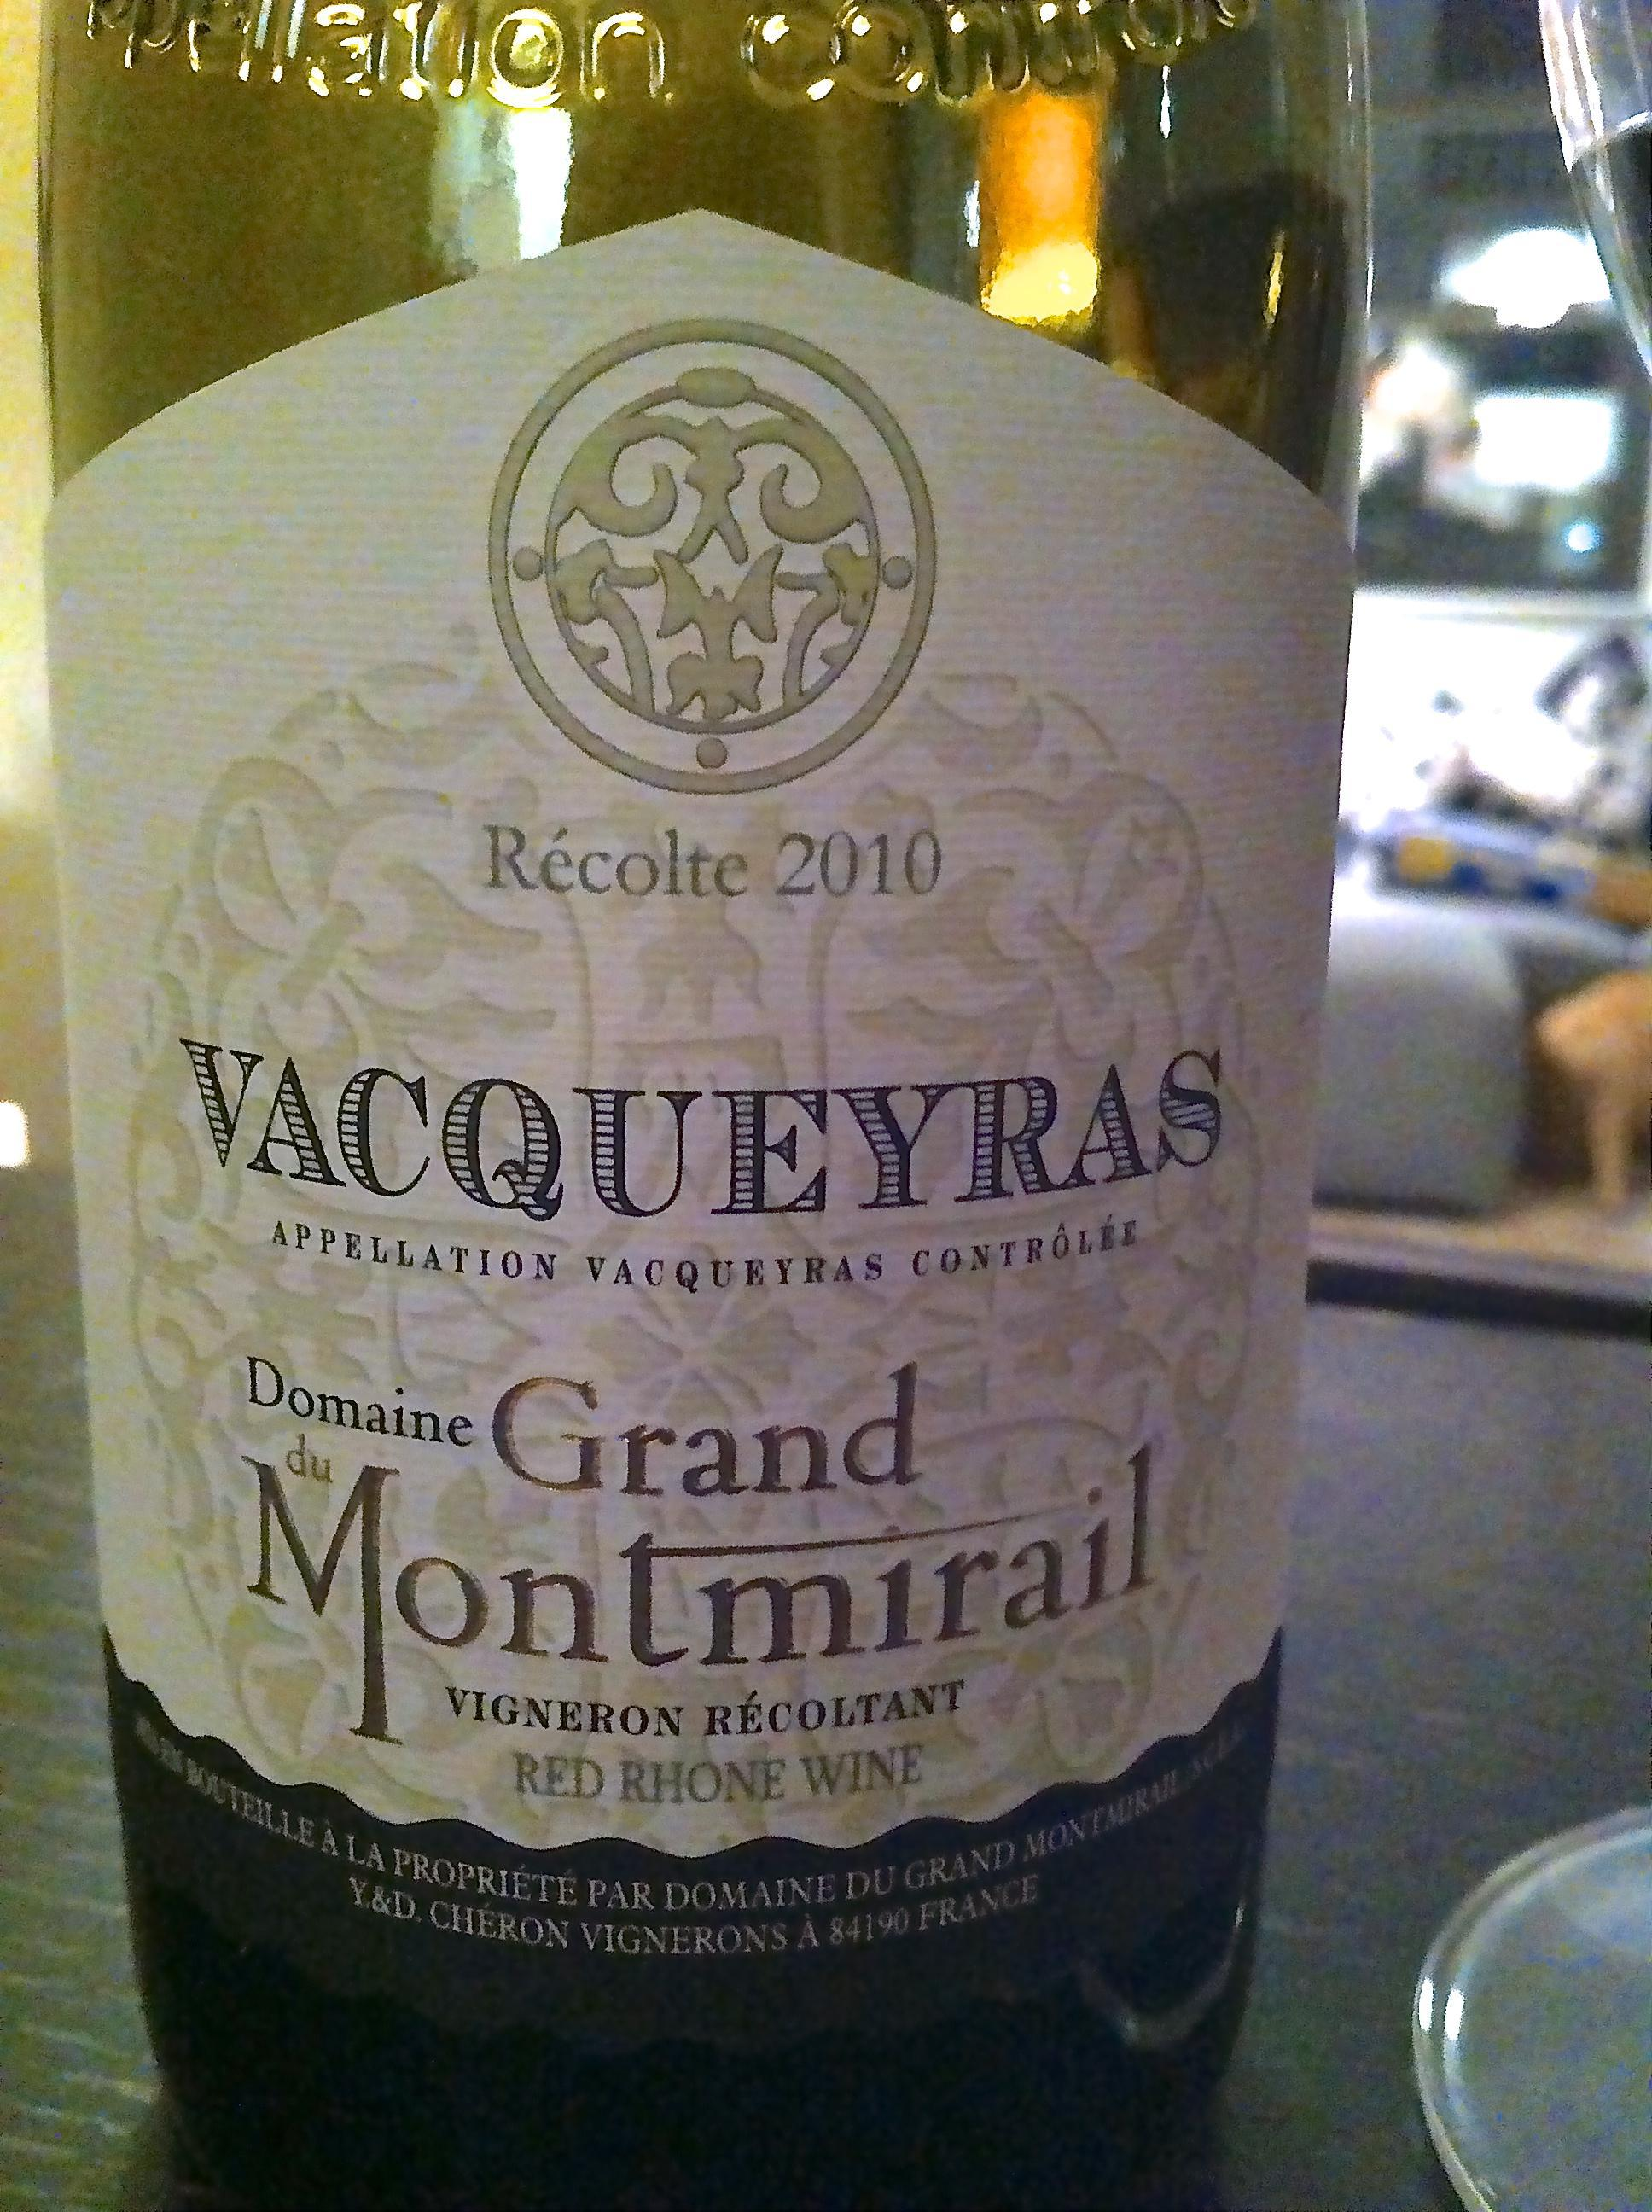 Domaine du Grand Montmirail, Vacqueyras, Rhone Valley, France 1